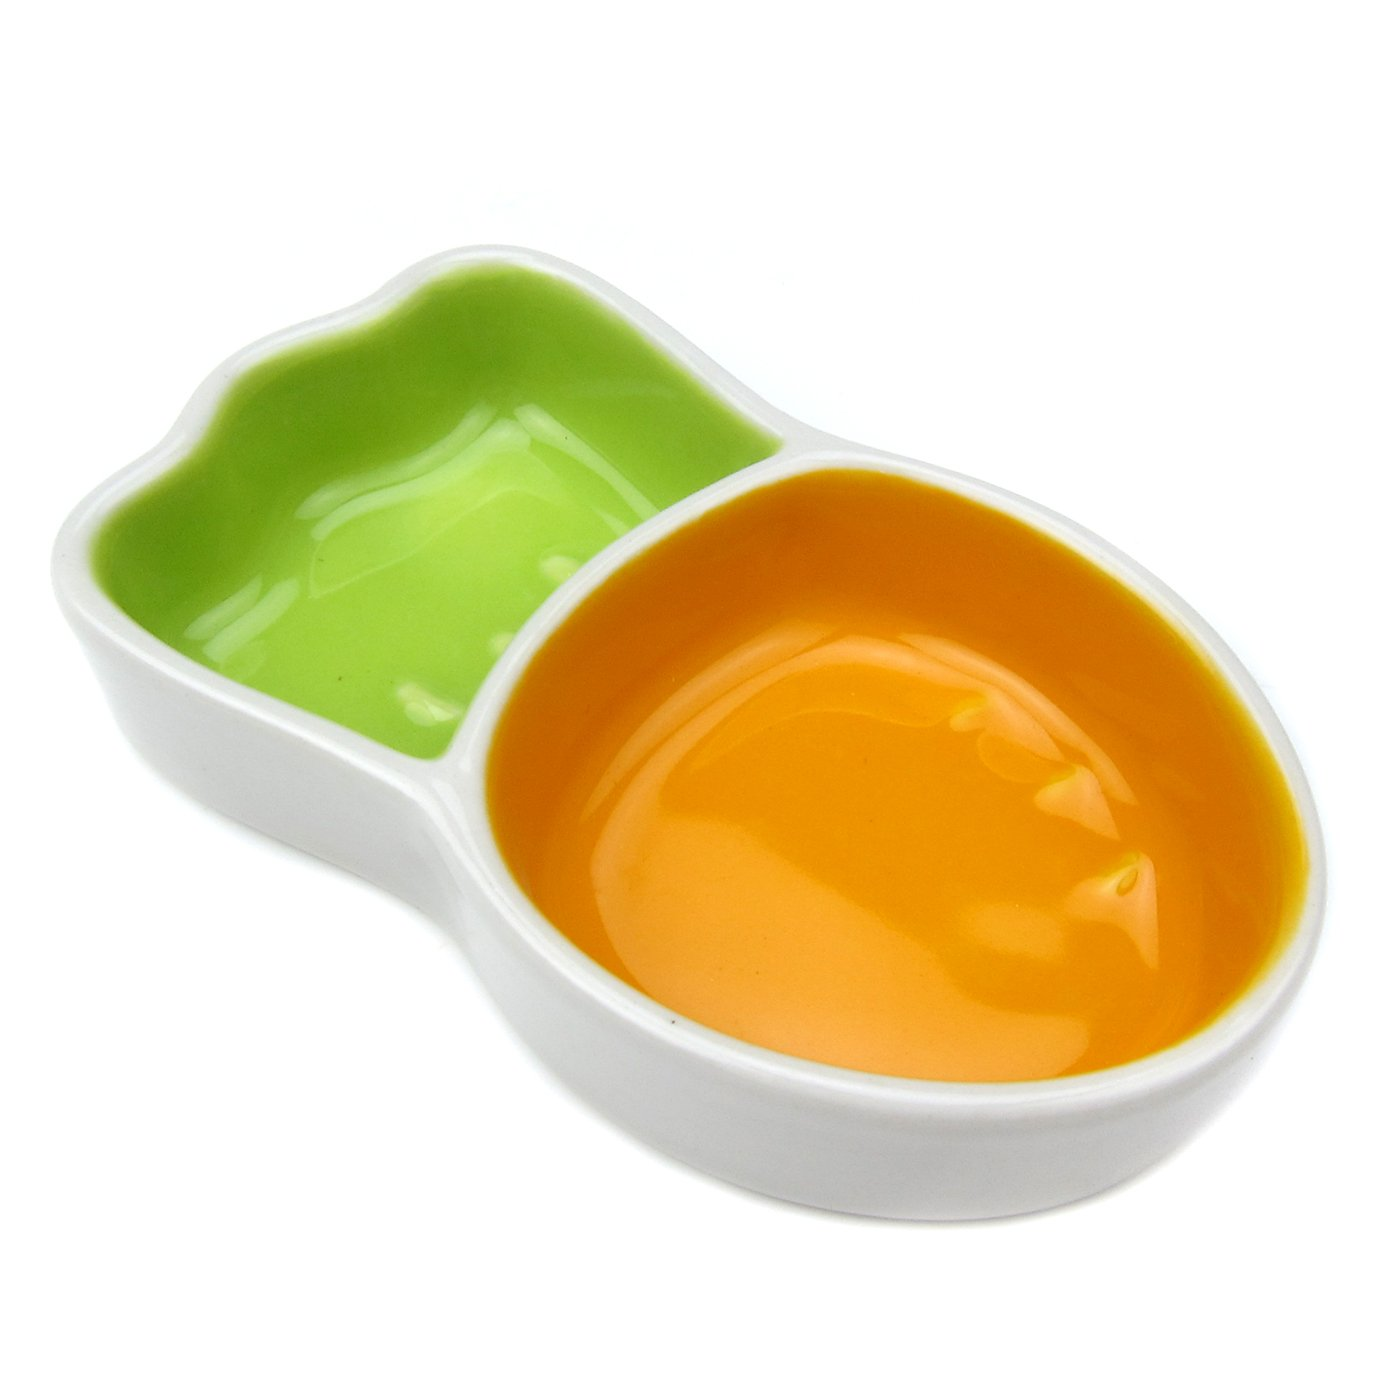 Alfie Pet by Petoga Couture - Rhys Ceramic Food and Water Bowl for Small Animals like Dwarf Hamster and Mouse